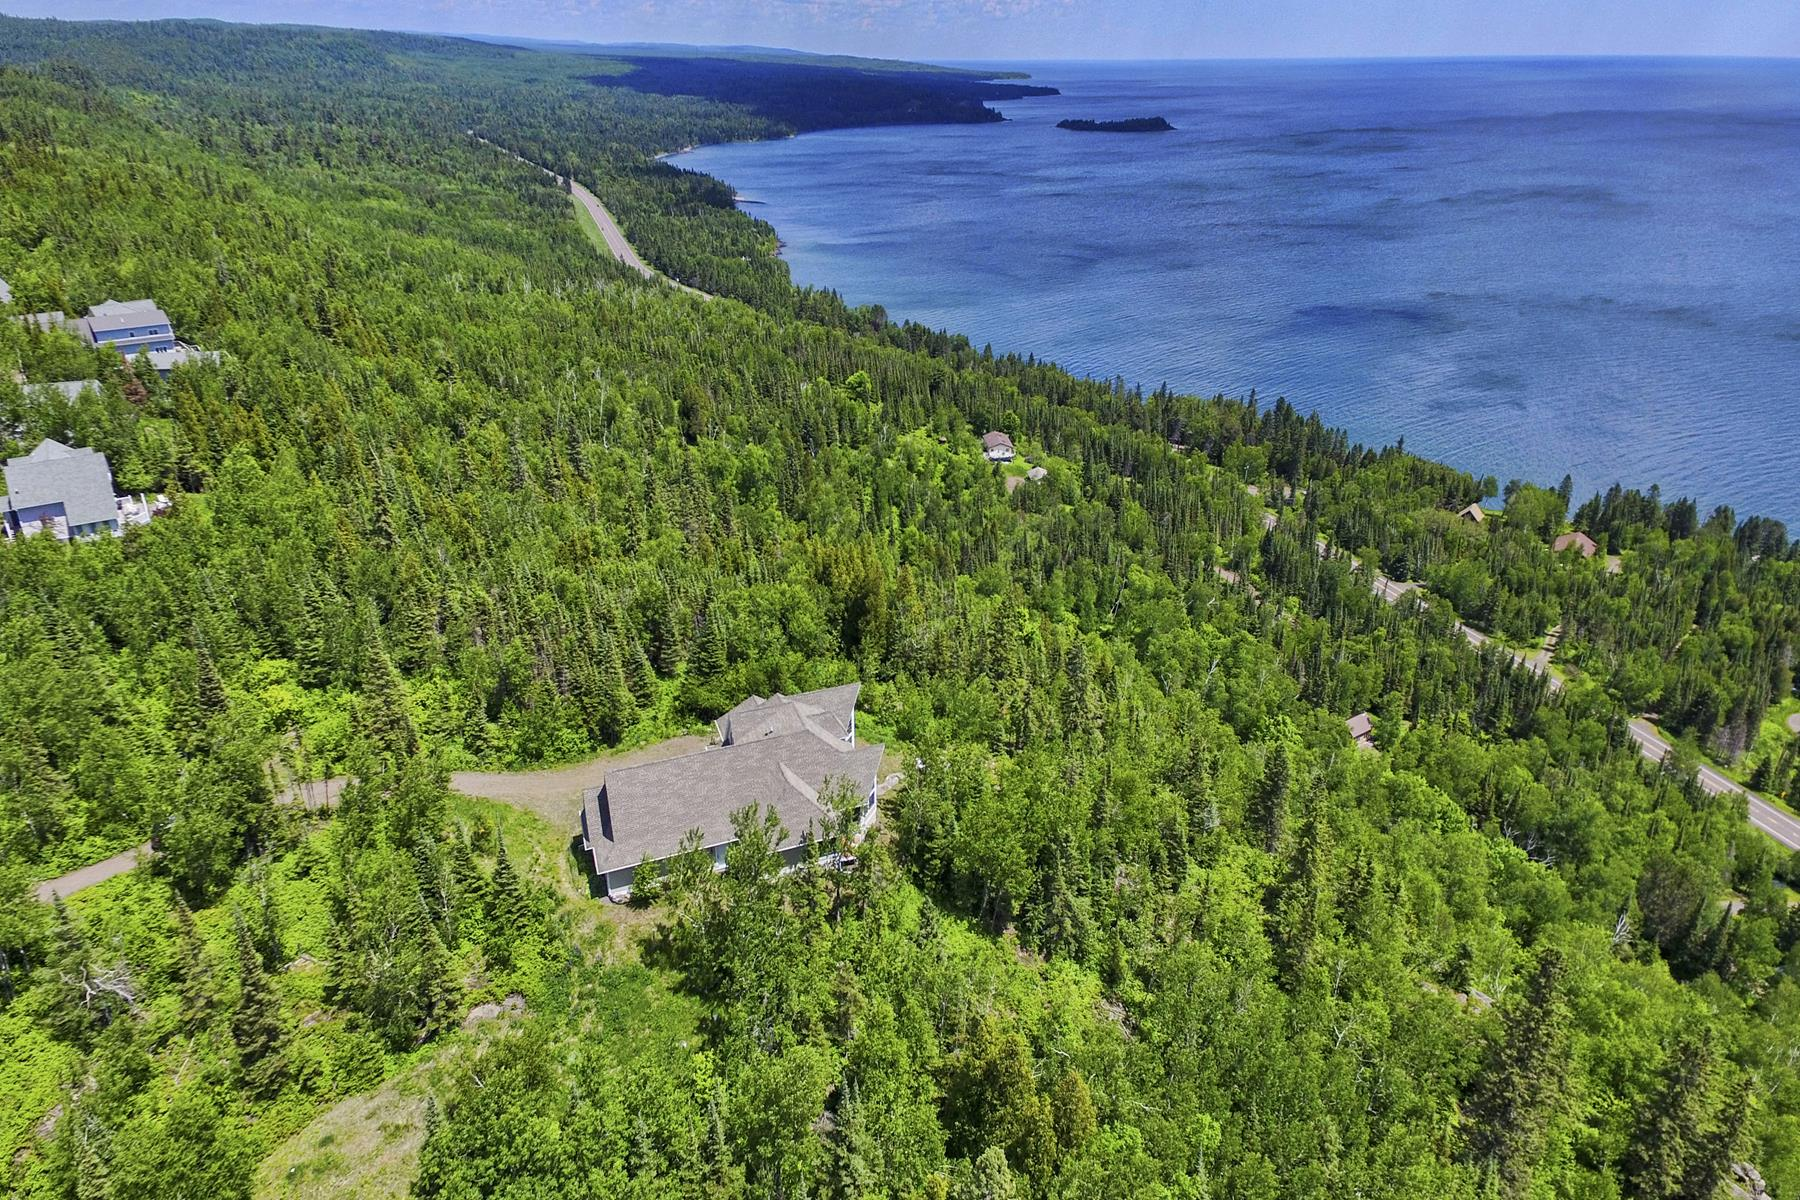 Single Family Homes for Sale at 1960 Silver Cliff Landing Rd Two Harbors, Minnesota 55616 United States